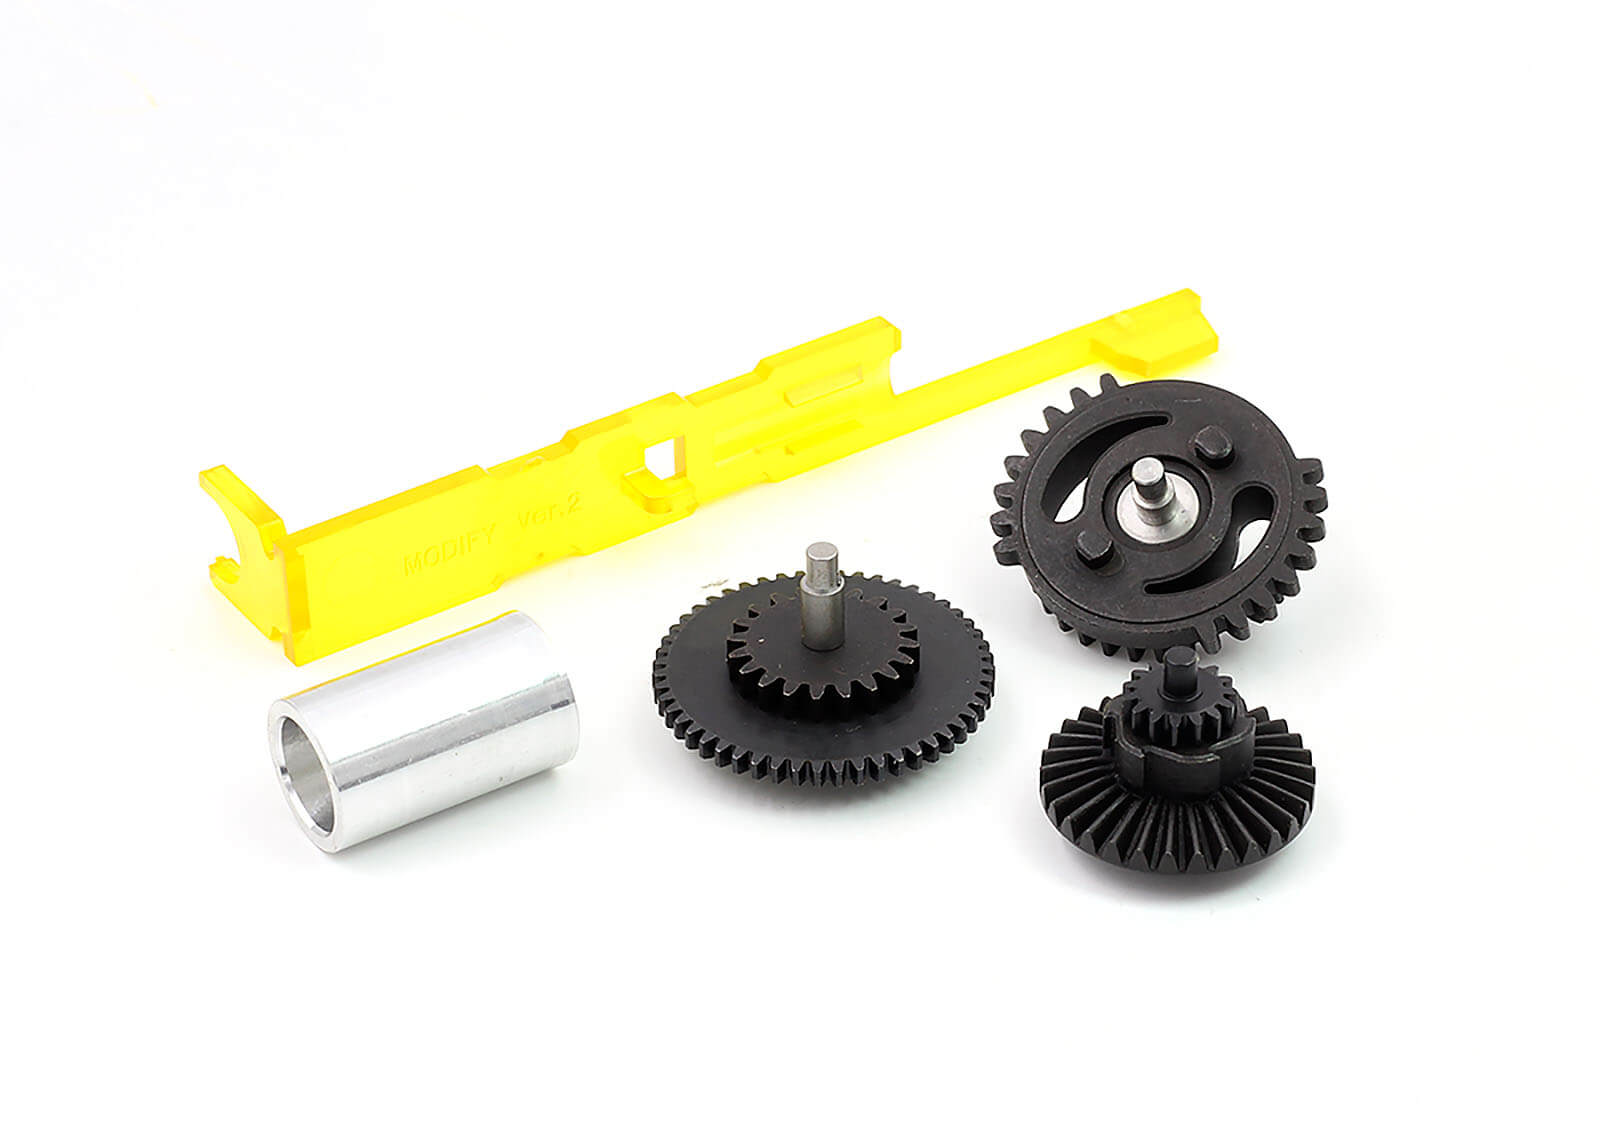 Modify Quantum Gear Set - Modify Airsoft parts